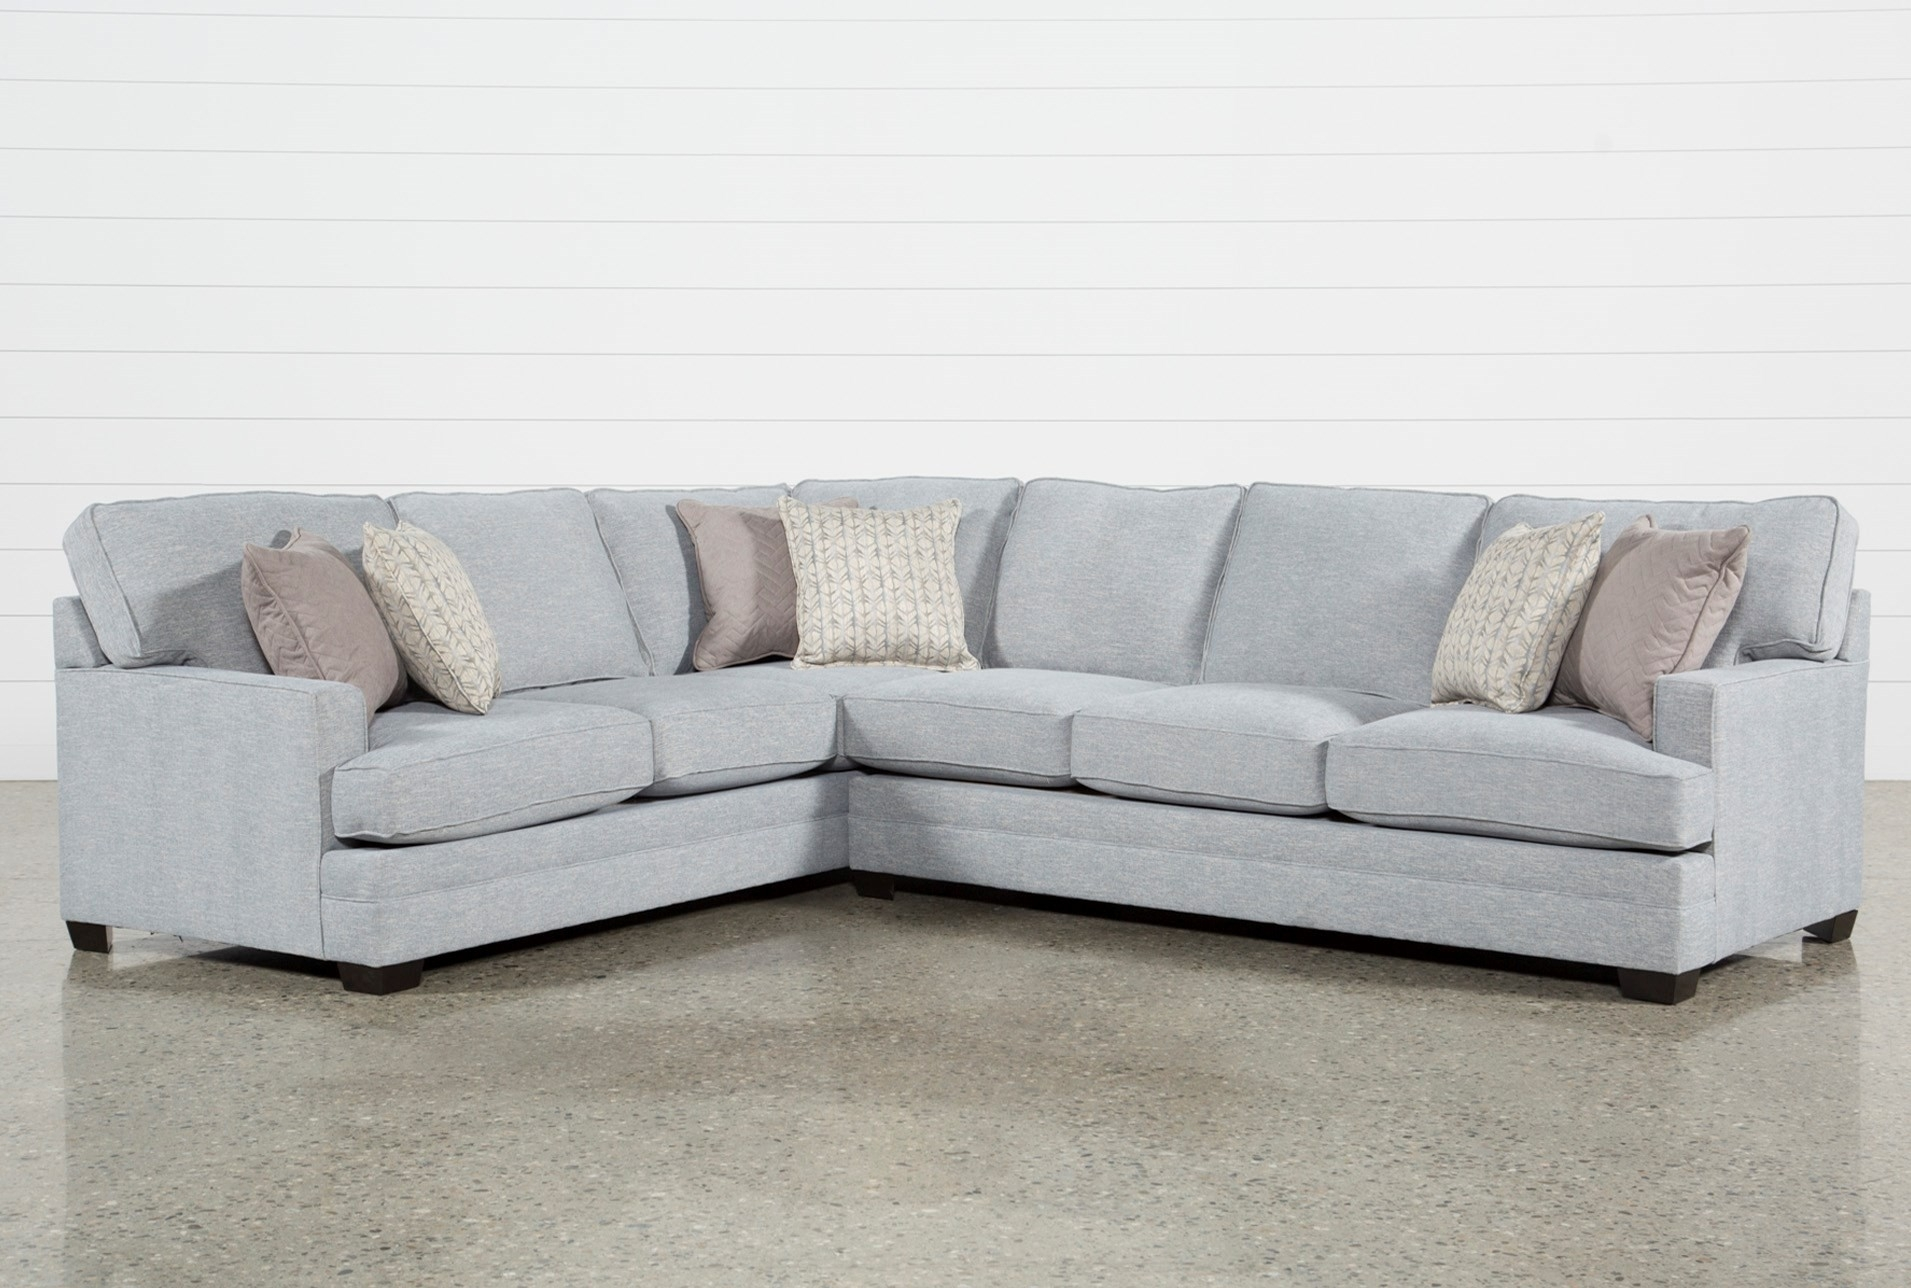 Living Spaces Sectional Cosmos Grey 2 Piece W Raf Chaise 206402 0 Regarding Cosmos Grey 2 Piece Sectionals With Raf Chaise (View 2 of 25)